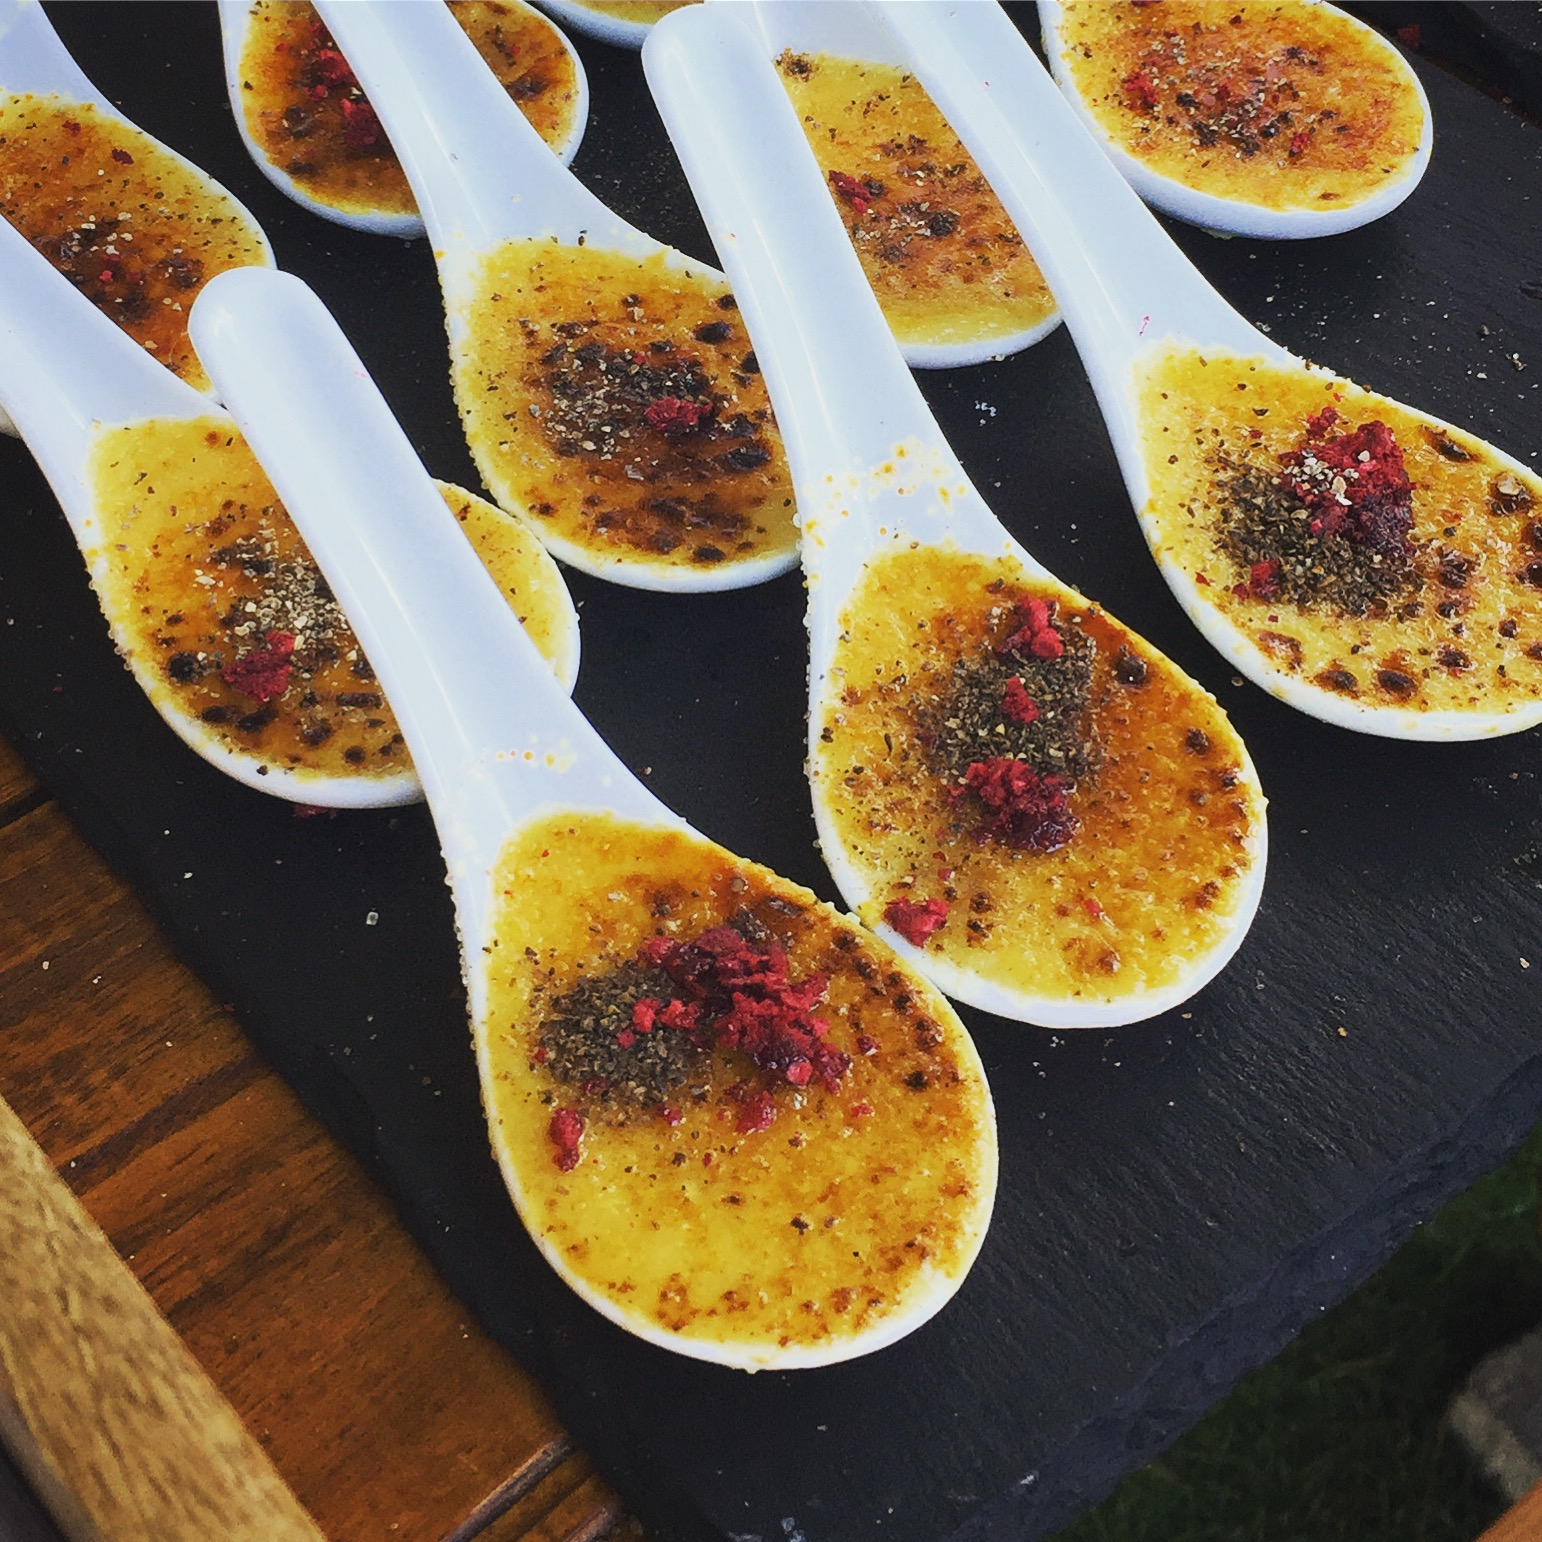 The Bistro's French creation of a foie gras creme brulee